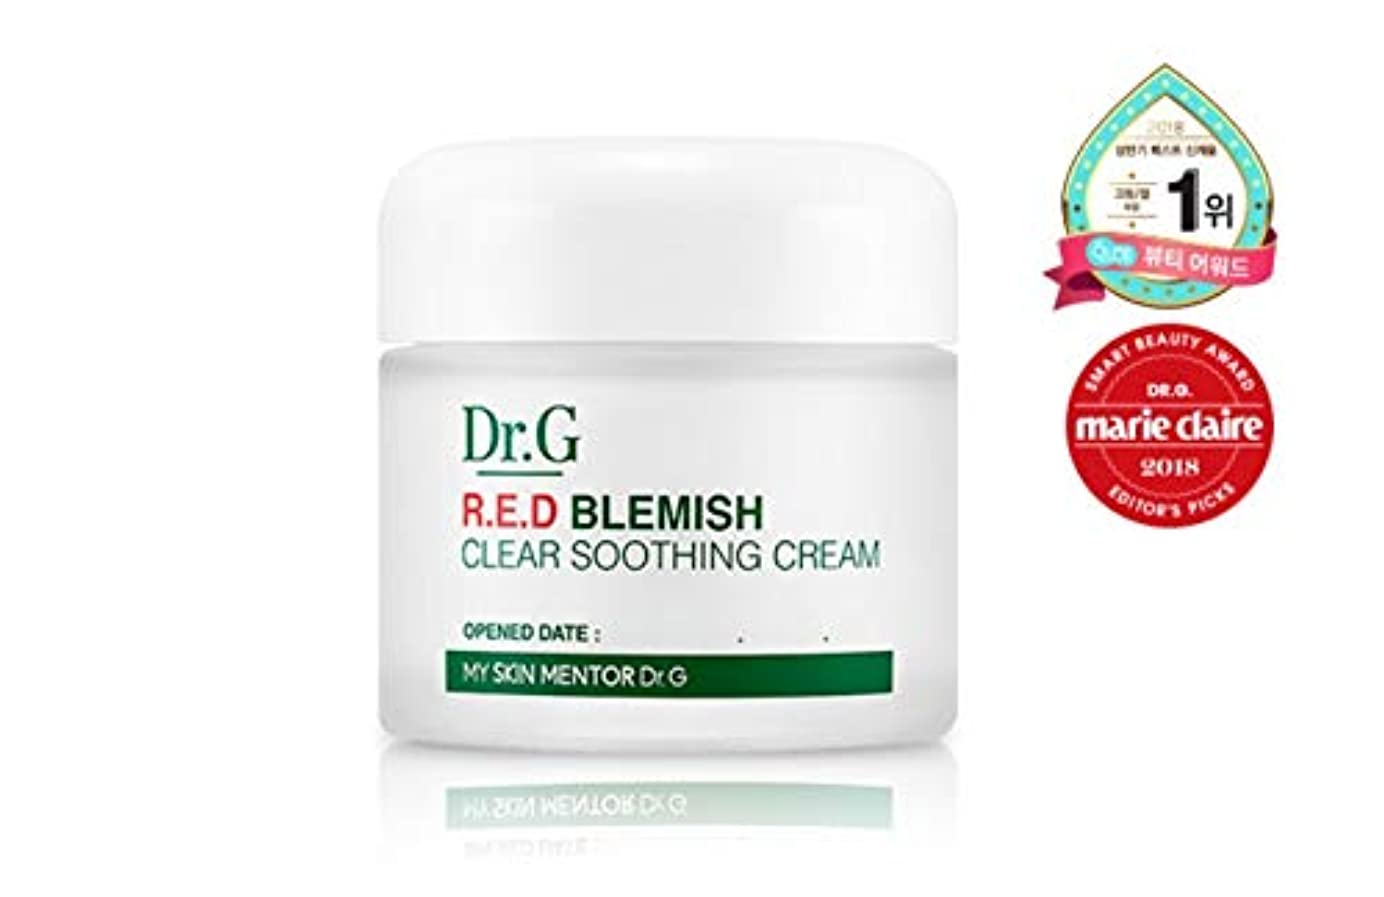 [Dr.Gドクタージー]レッド ブレミッシュ クリア スージング クリーム 70ml / Dr.G RED BLEMISH CLEAR SOOTHING CREAM 70ml [並行輸入品]